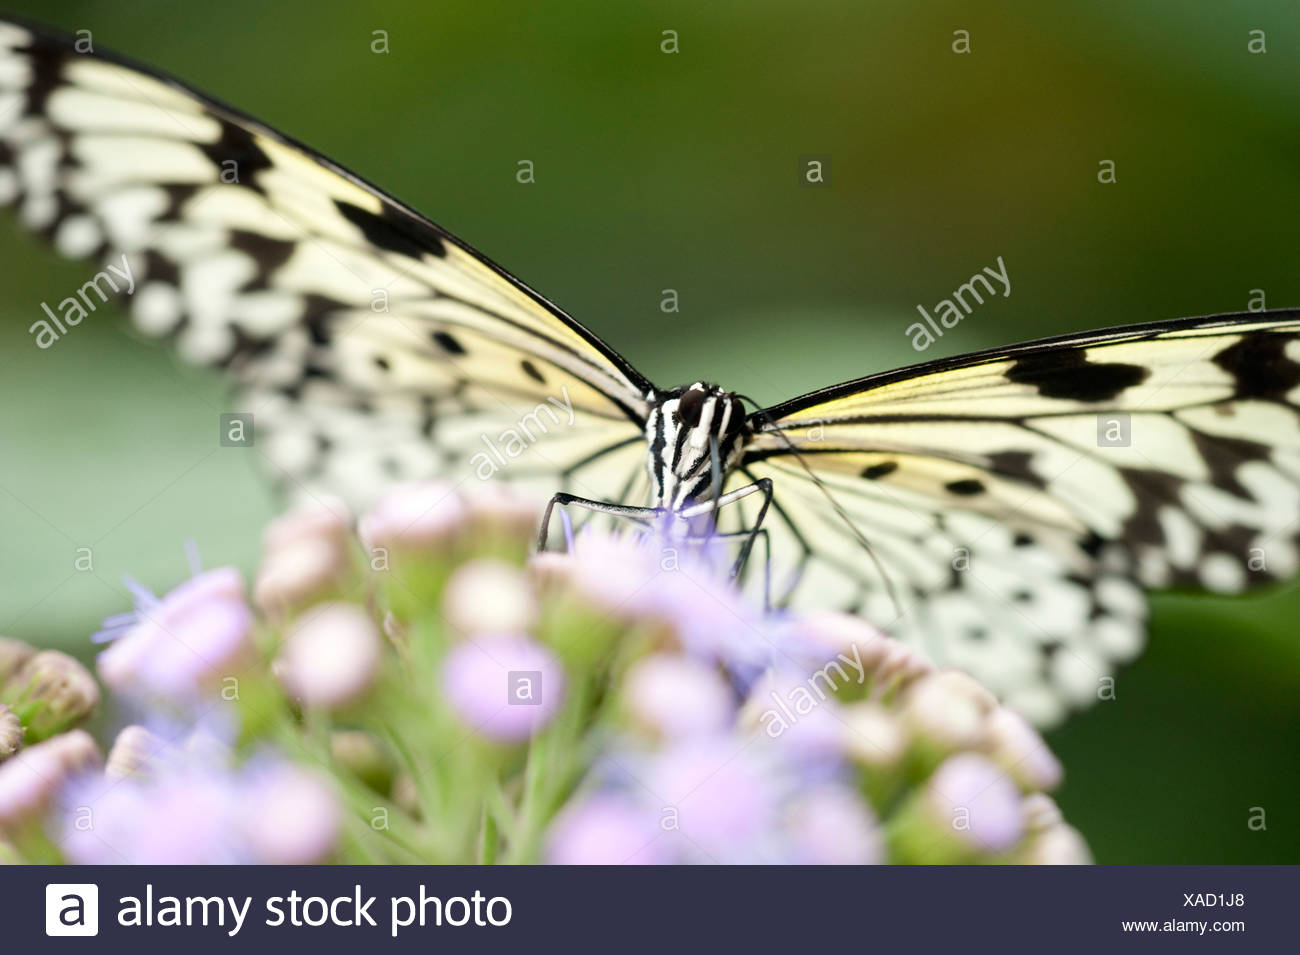 Tree Nymph Butterfly Idea leuconoe South Asia - Stock Image